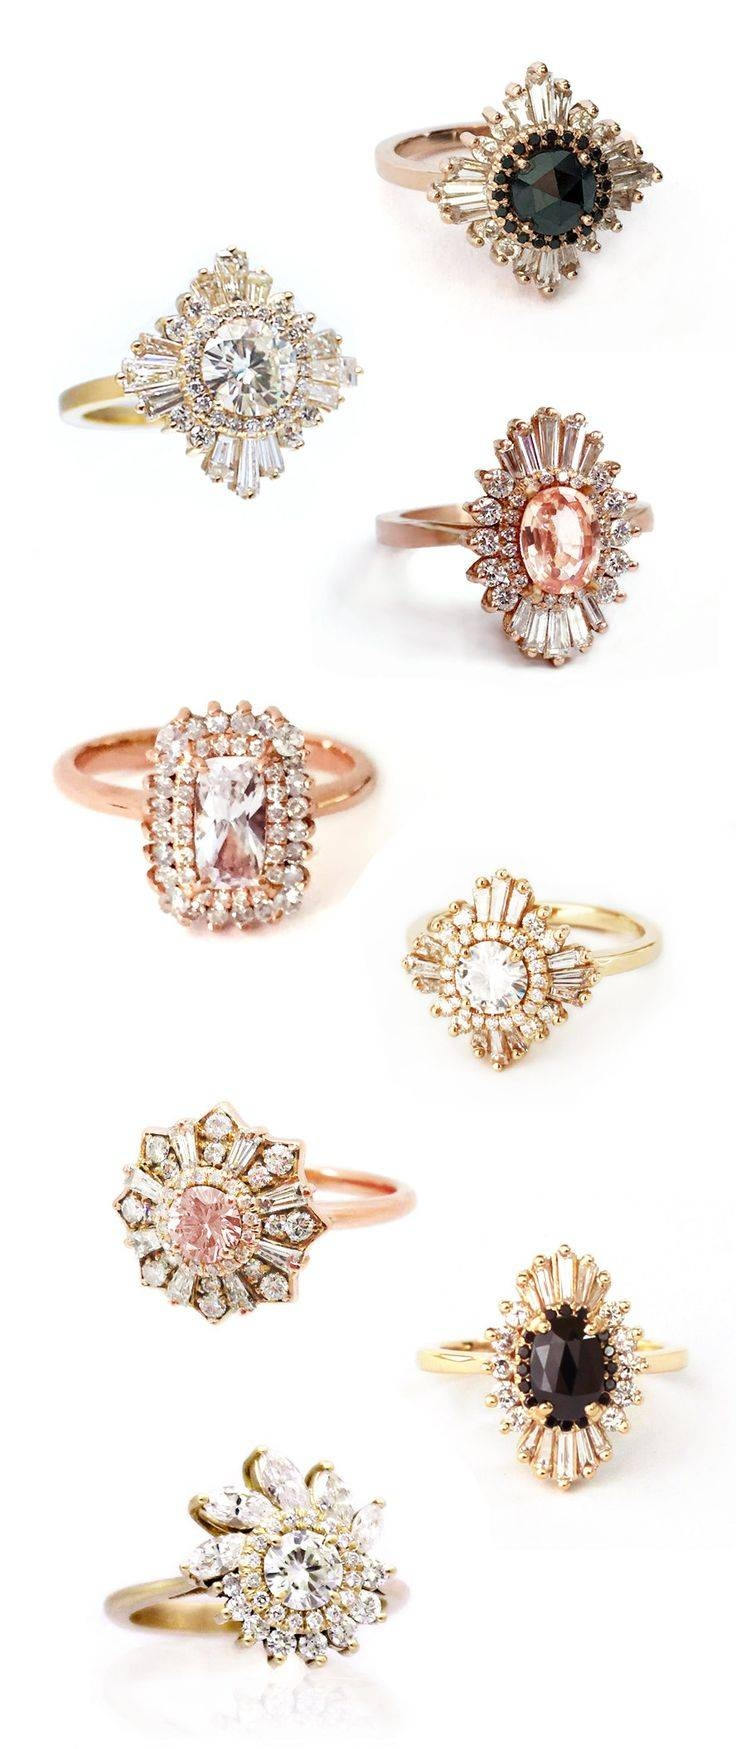 Best 25+ Alternative Wedding Rings Ideas Only On Pinterest In Artsy Wedding Rings (View 7 of 15)